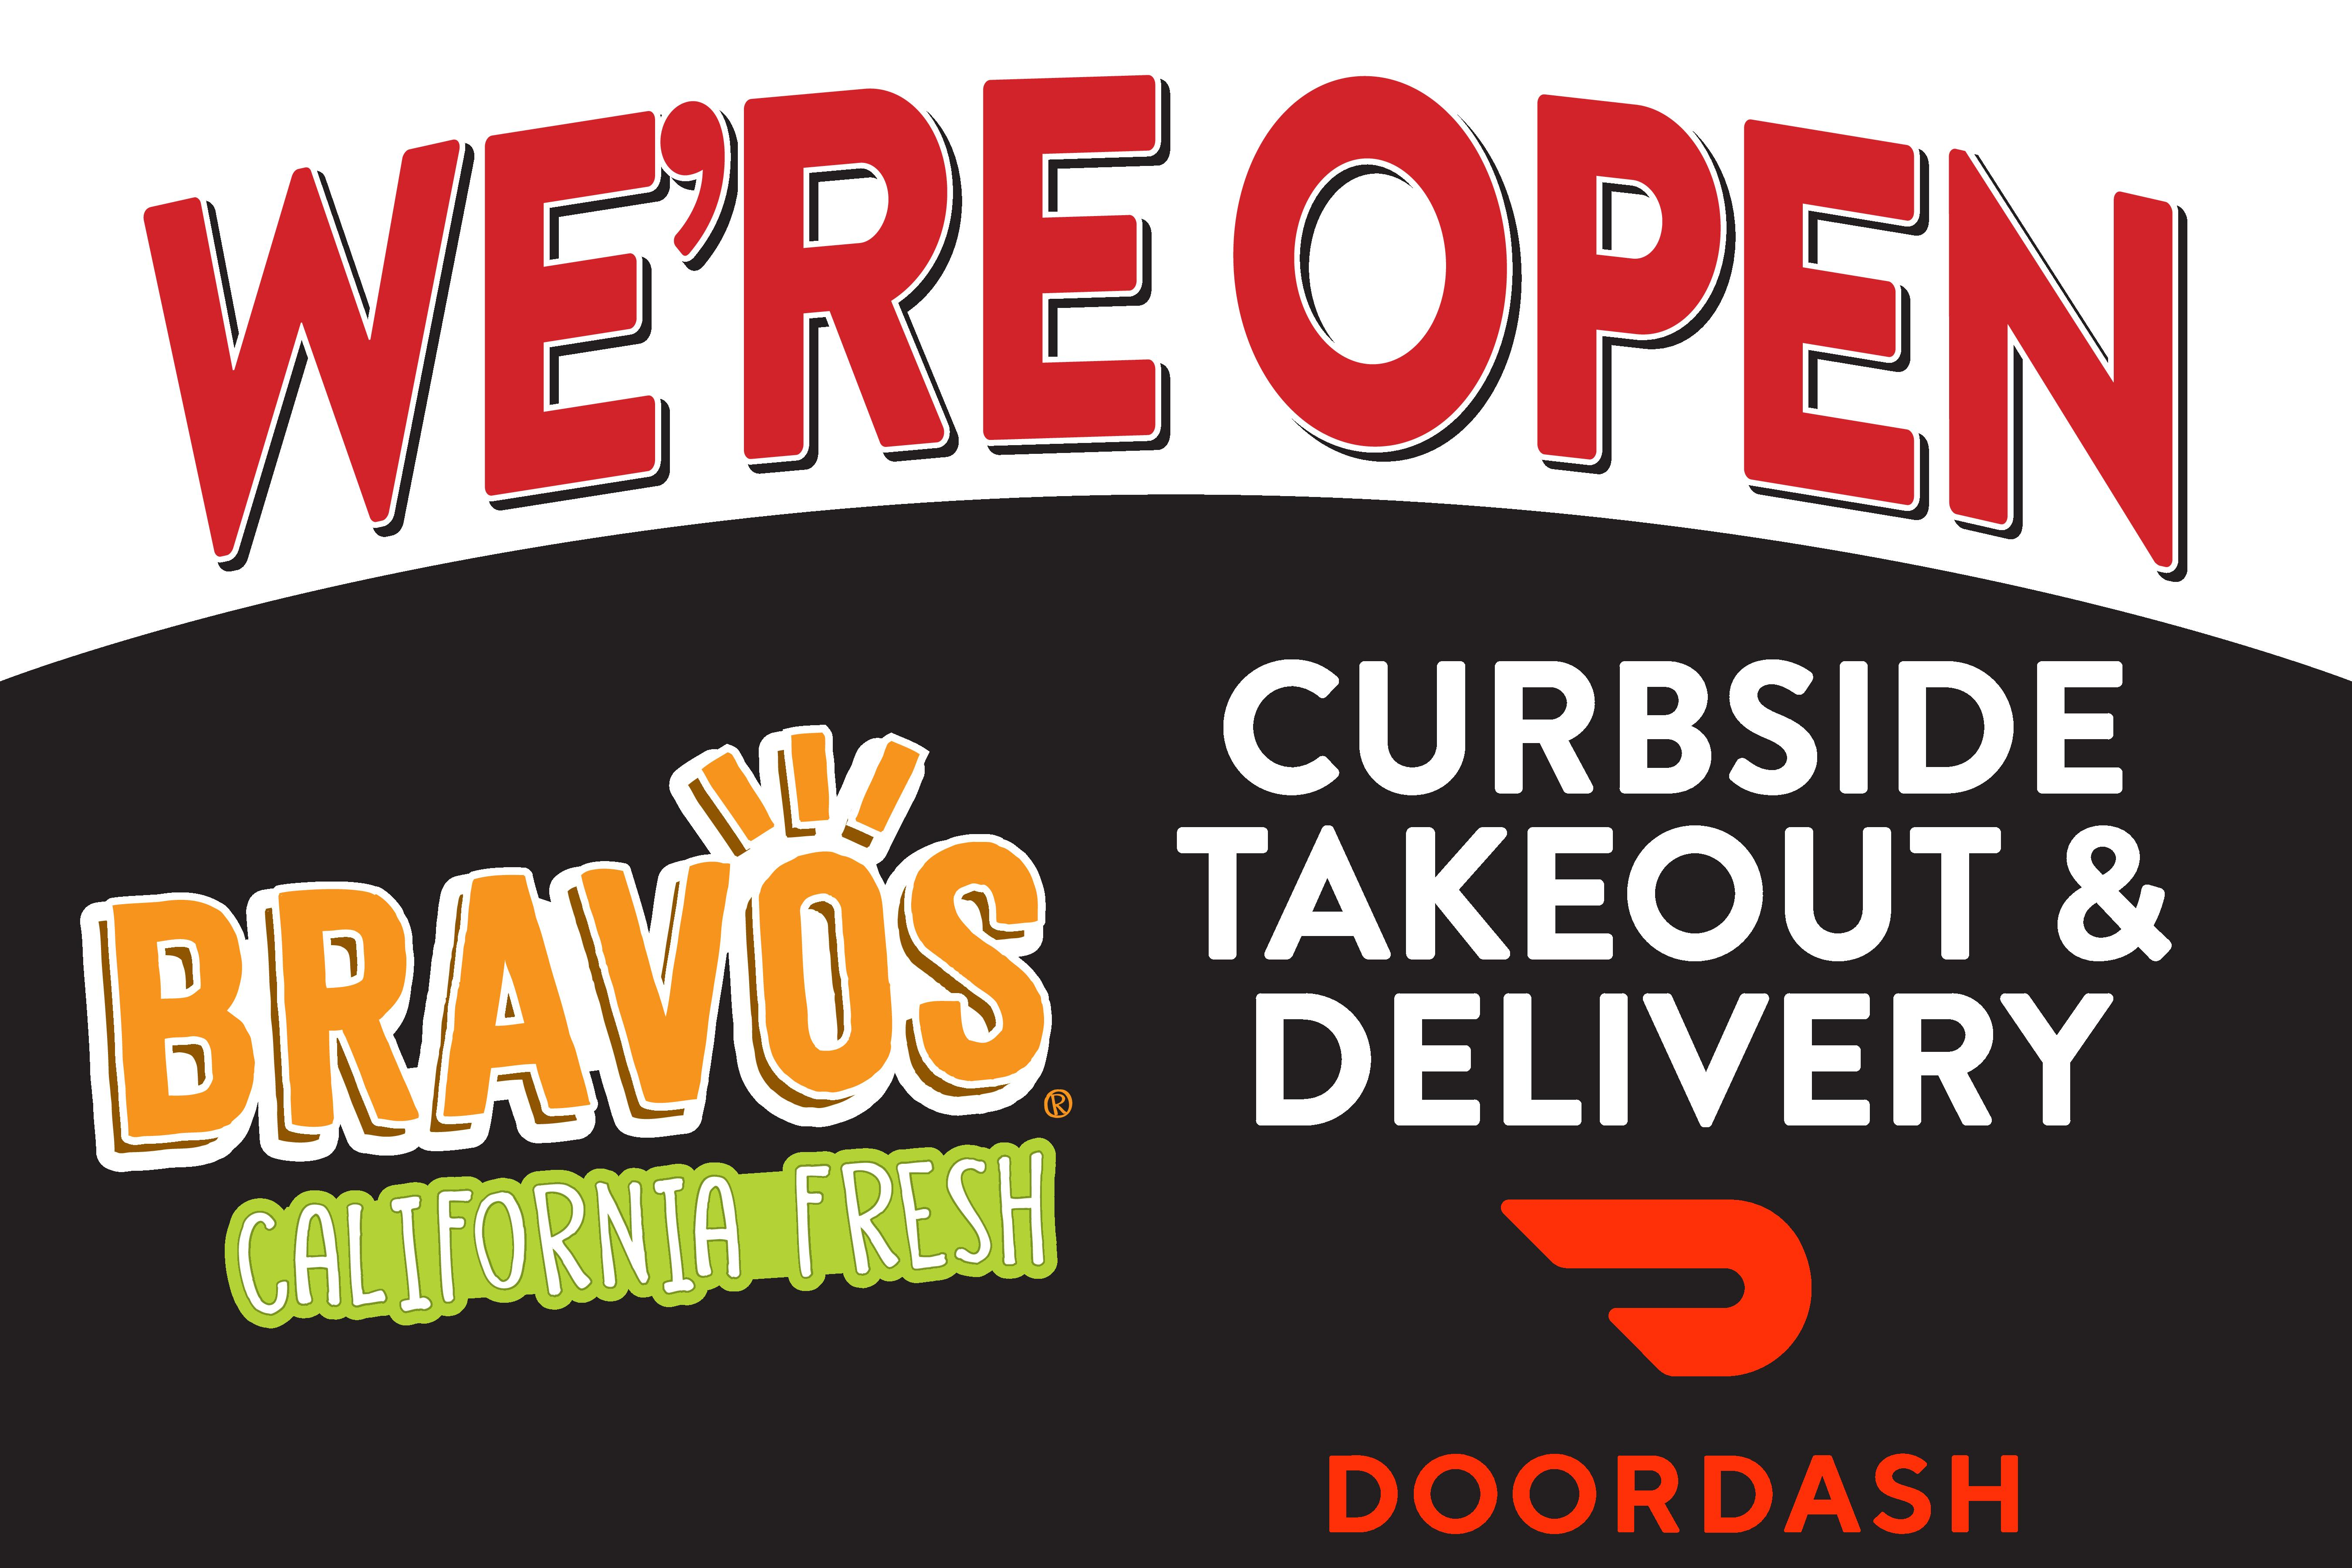 Bravos California Fresh sign saying we are open for takeout and delivery.